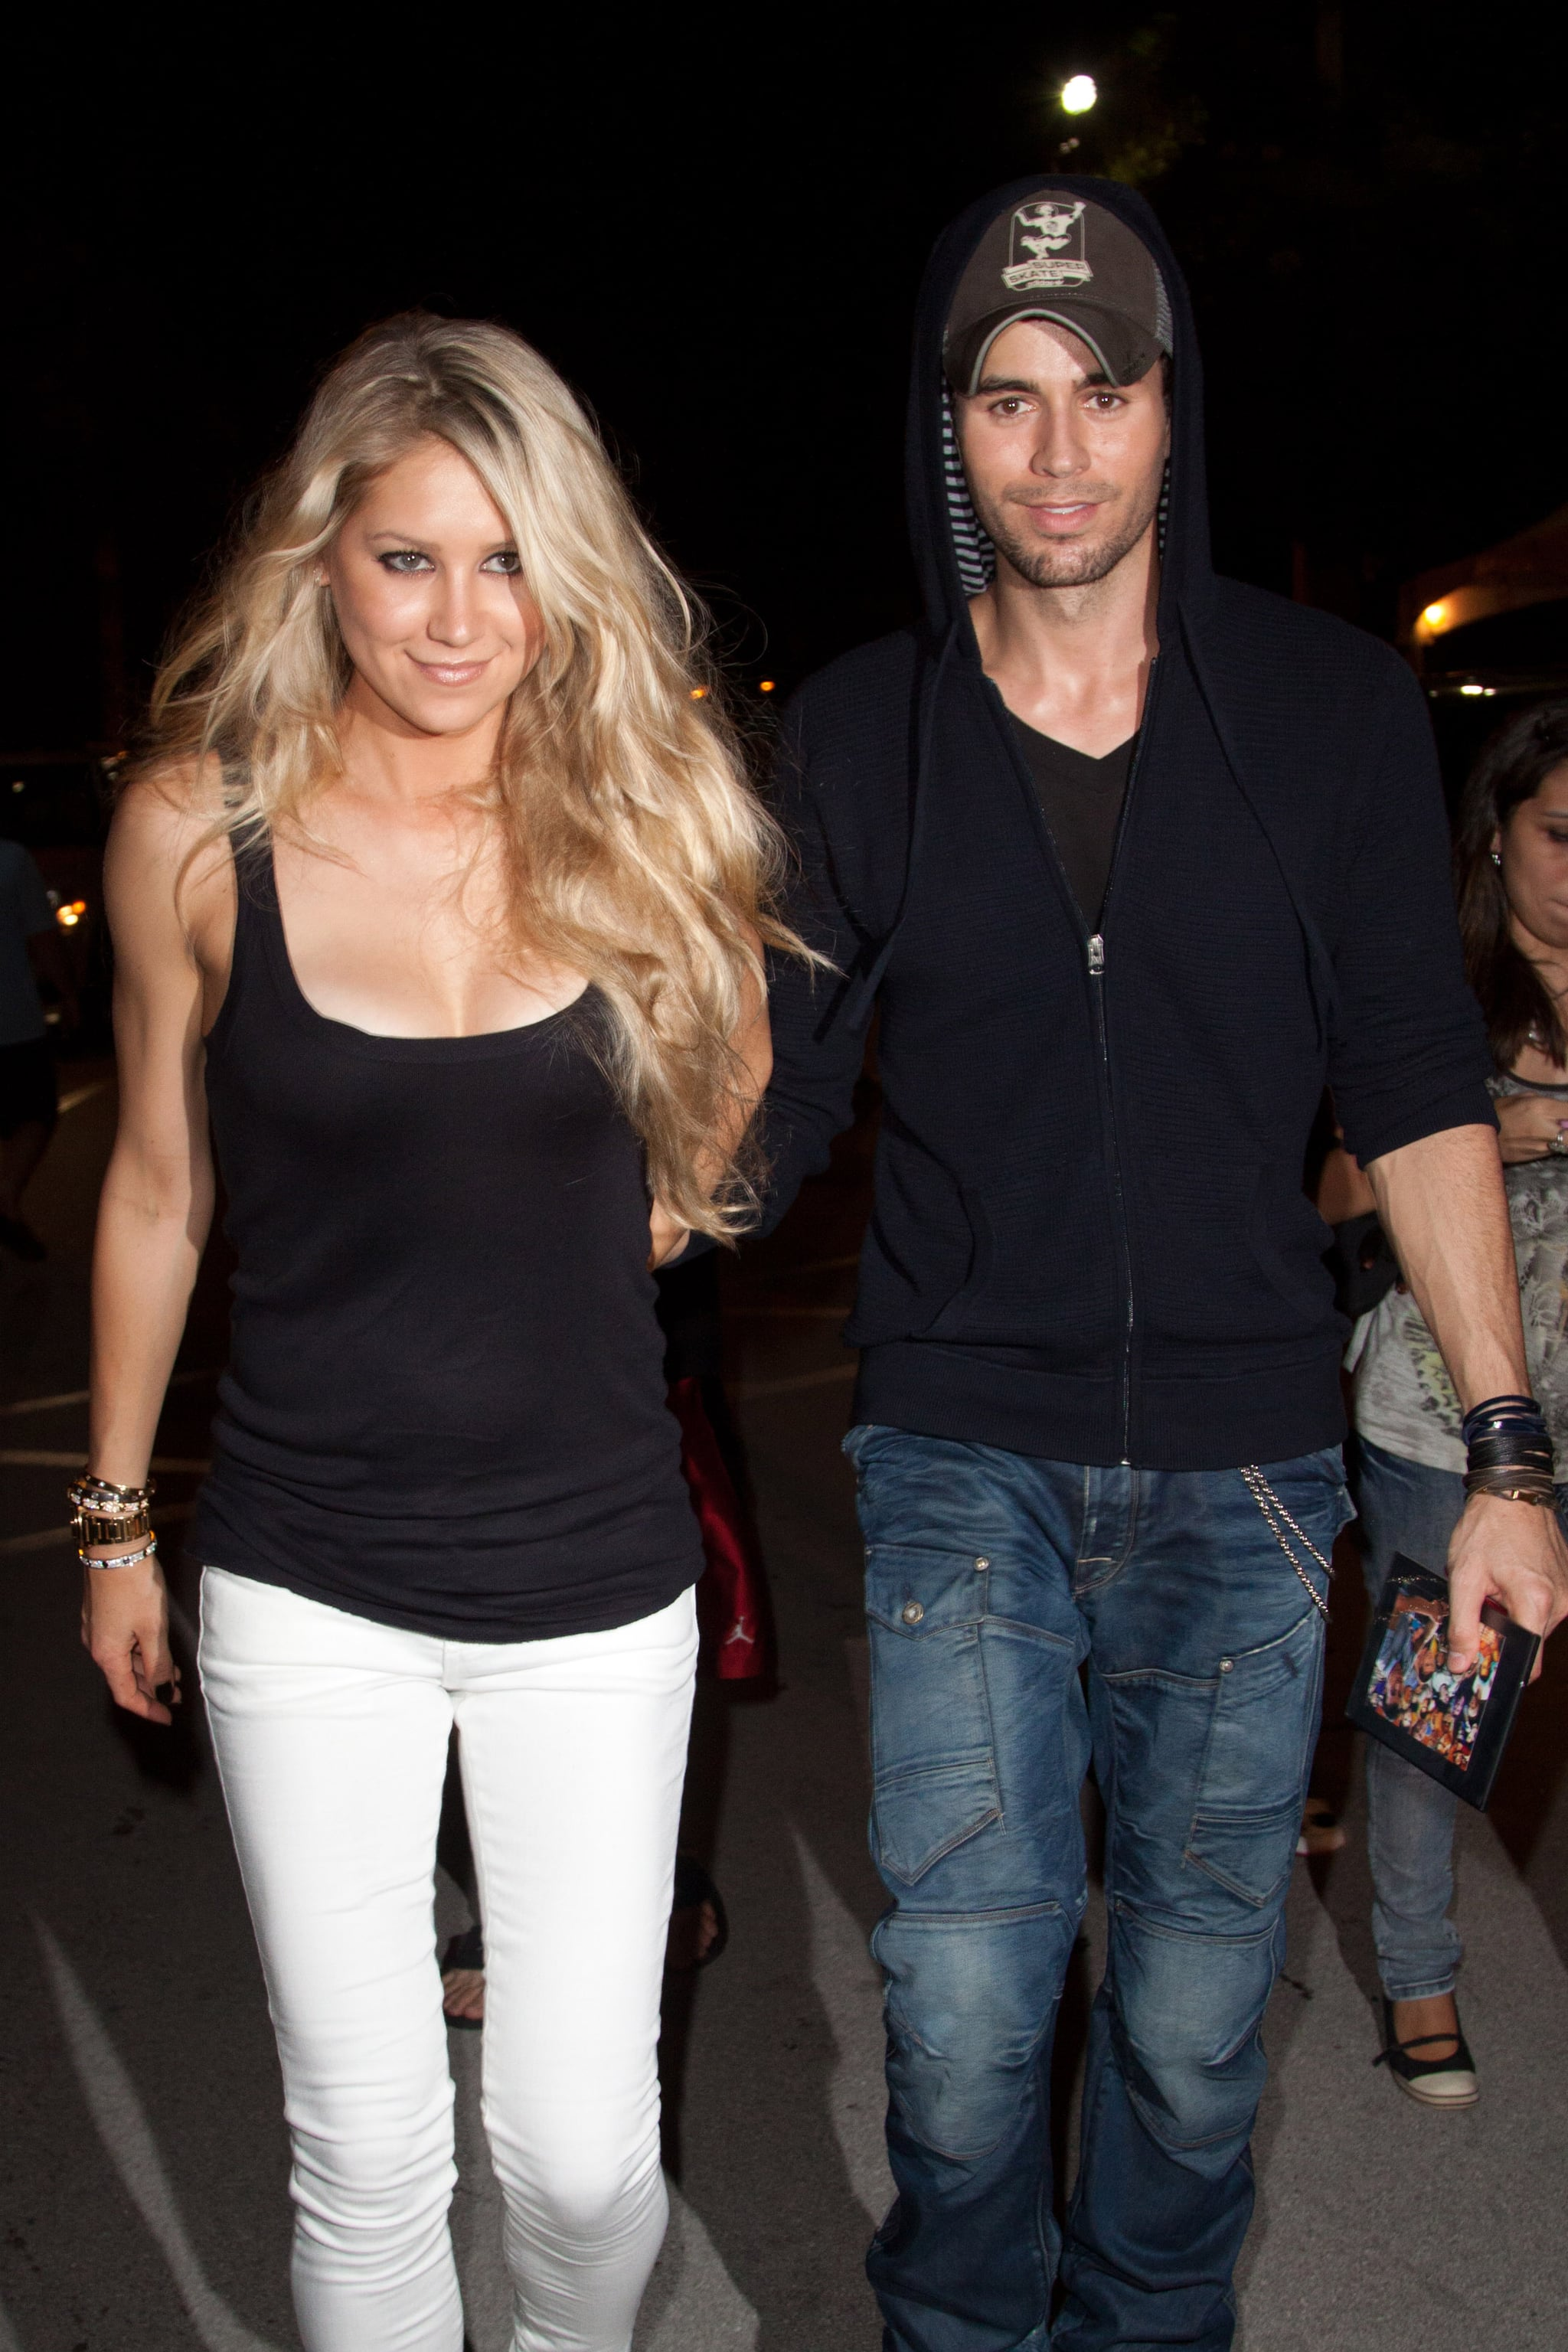 Anna Kournikova is not going to marry Enrique Iglesias 21.06.2010 57